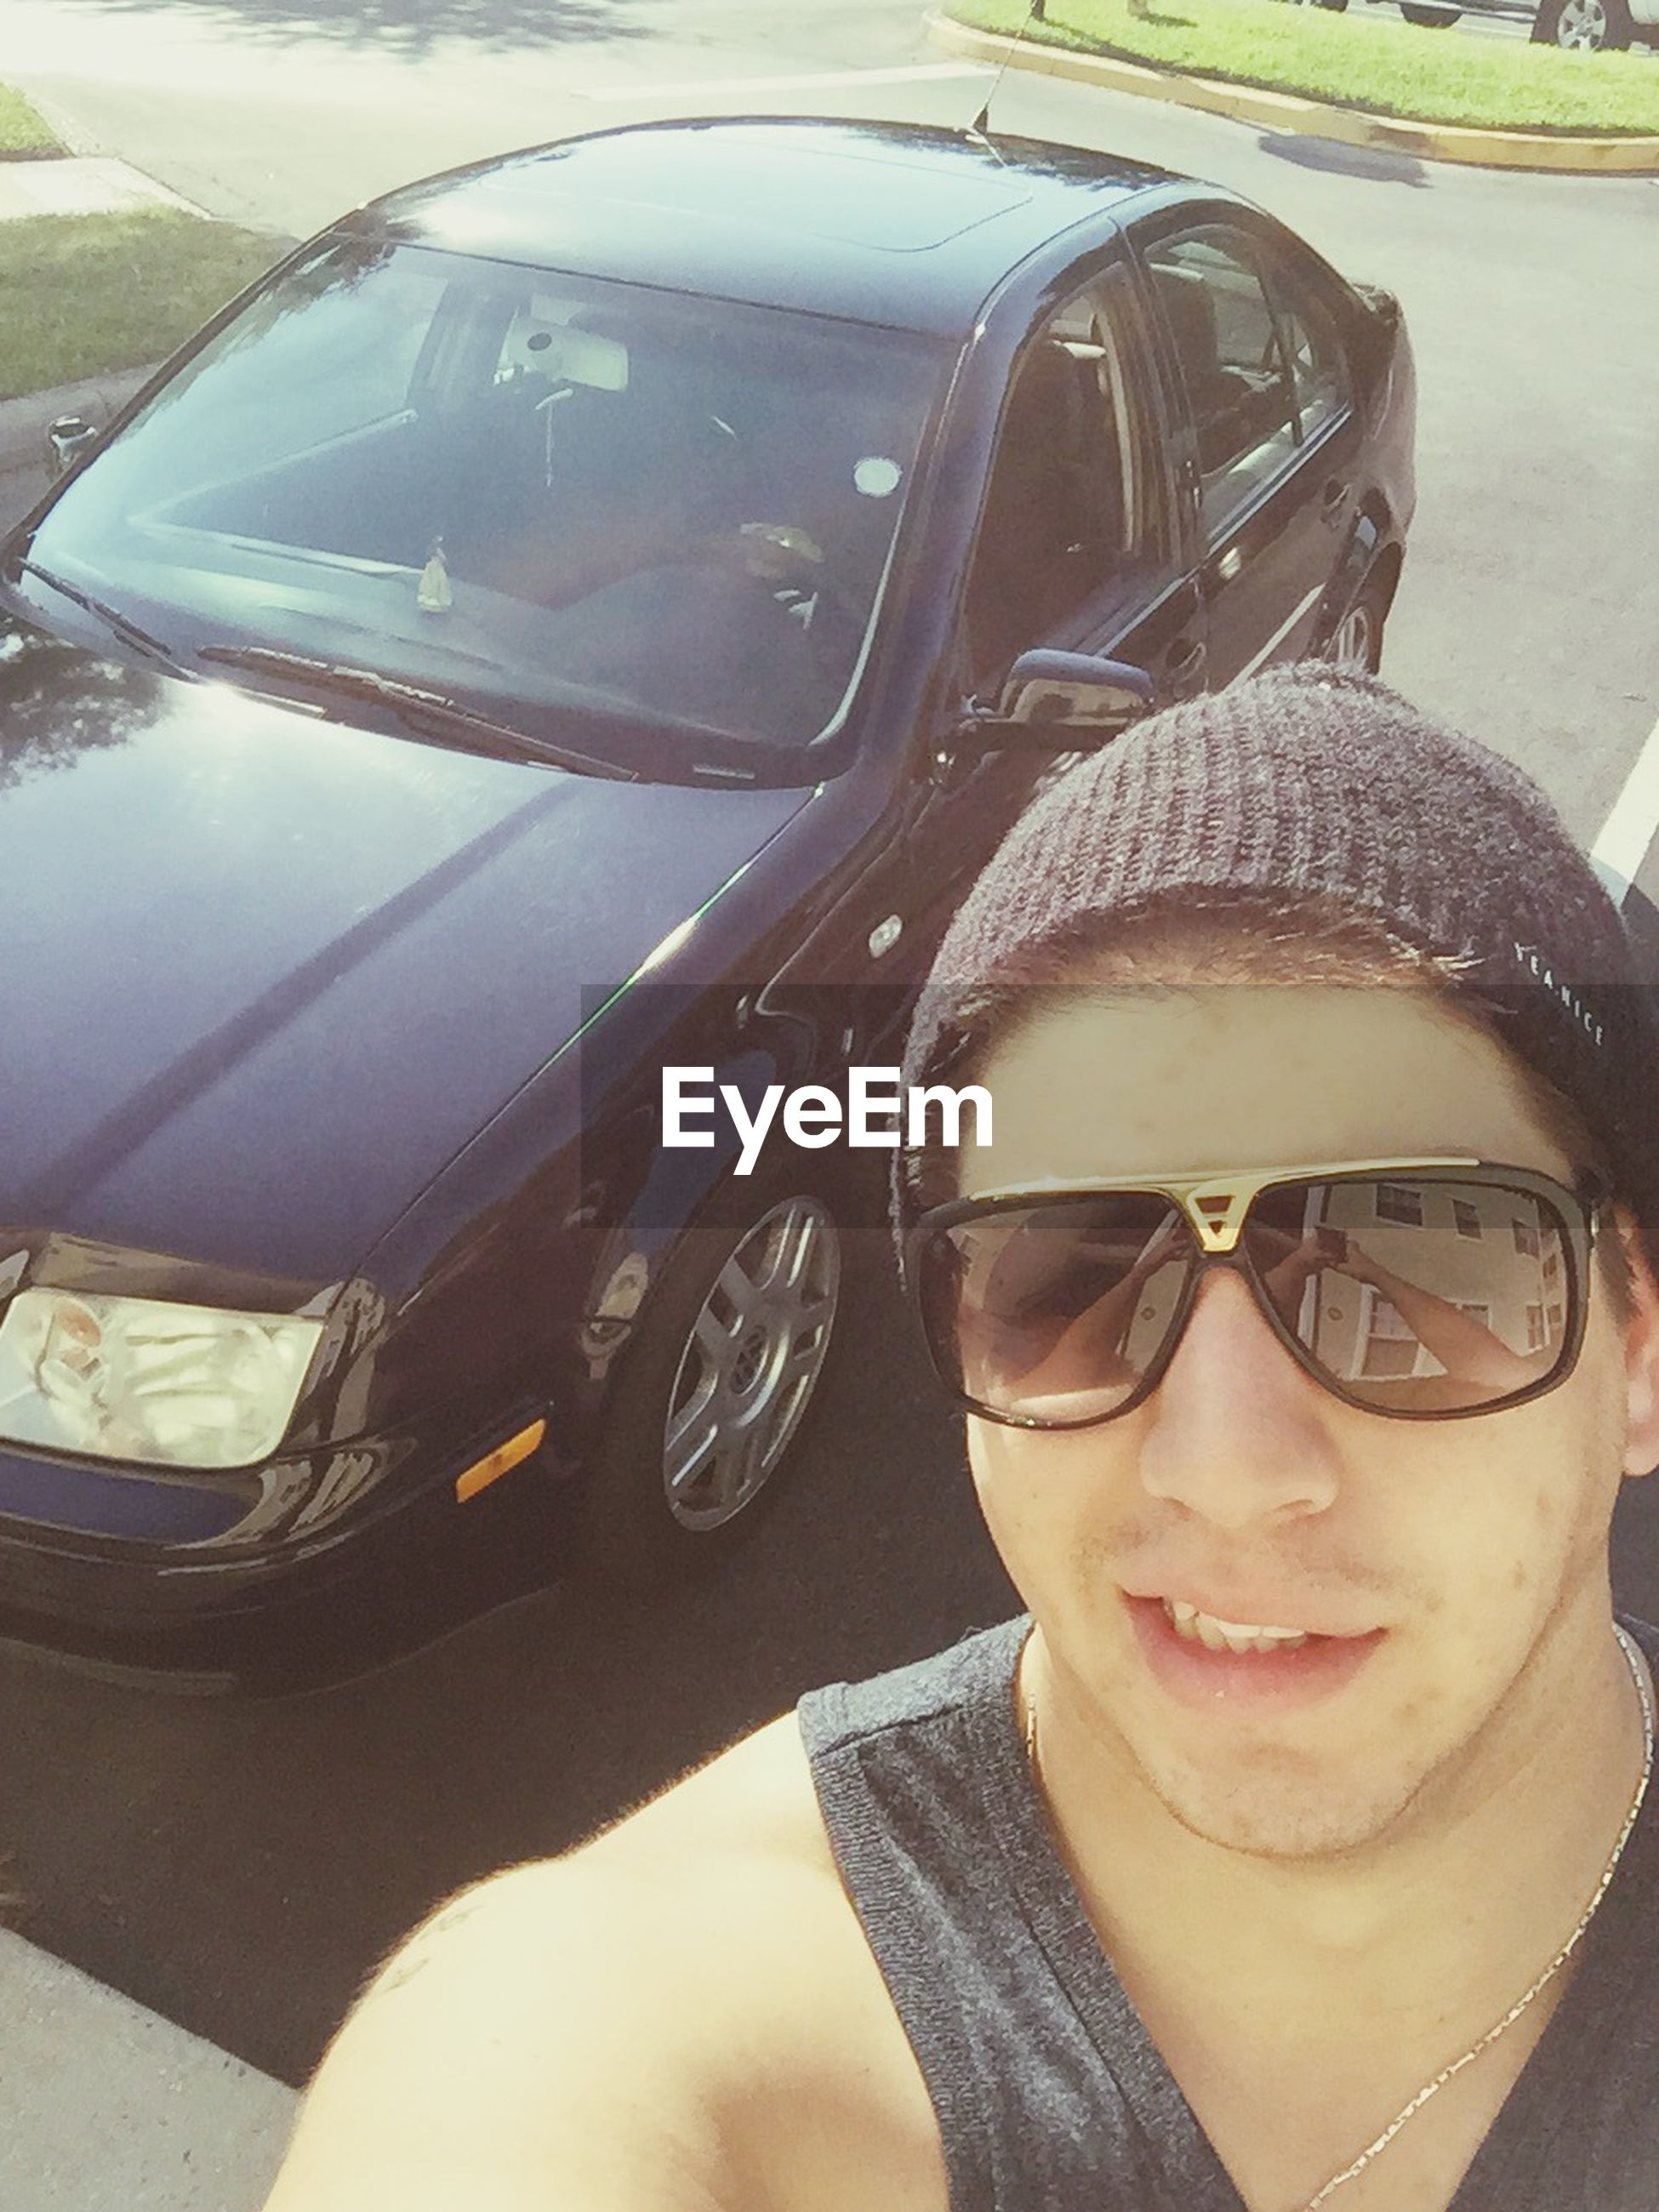 transportation, sunglasses, mode of transport, lifestyles, leisure activity, portrait, looking at camera, land vehicle, car, headshot, person, young adult, front view, reflection, travel, young men, close-up, head and shoulders